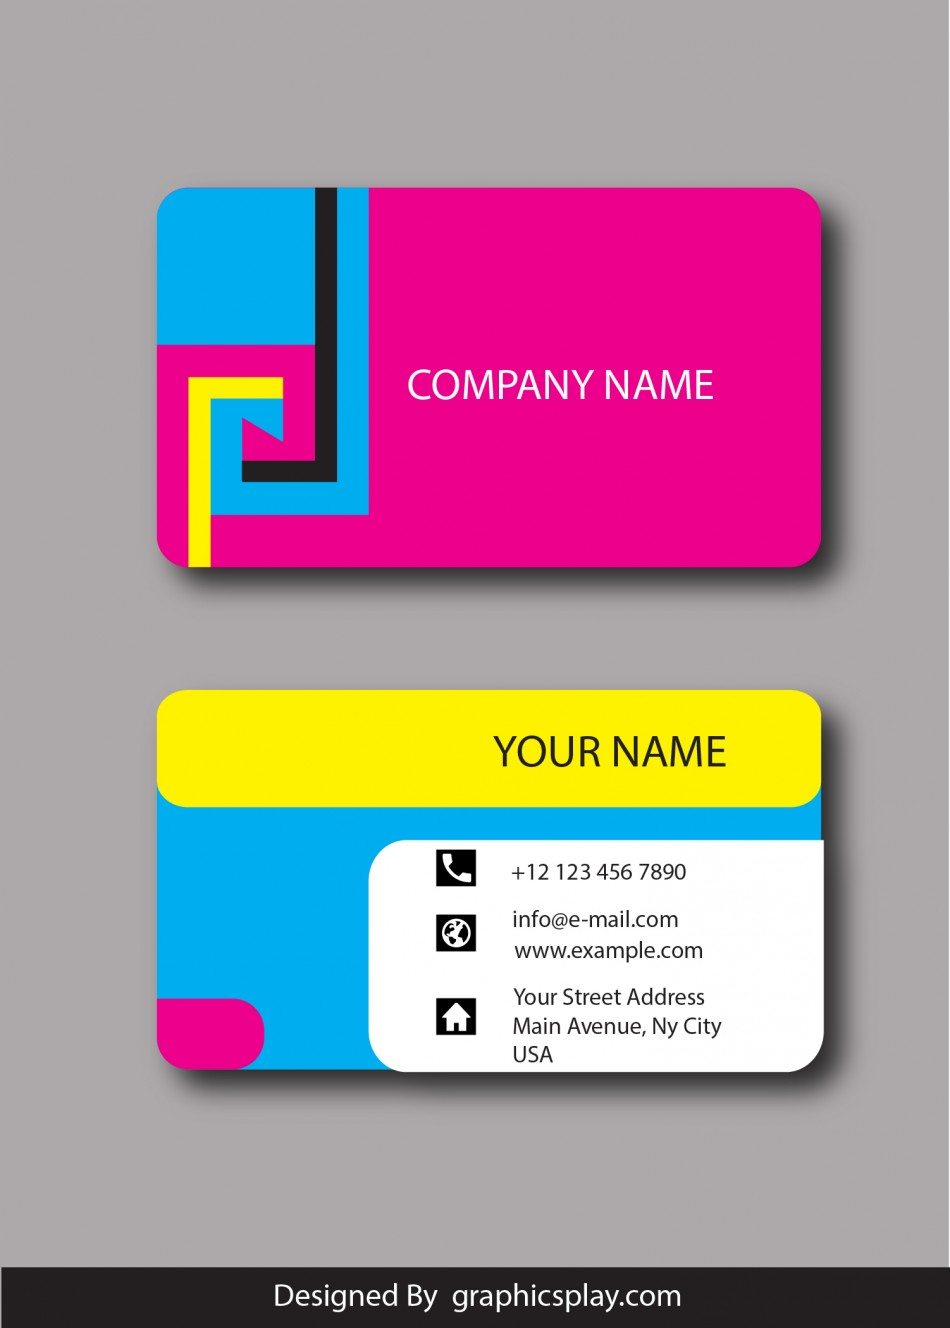 Business Card Design Vector Template Id 1800 Graphicsplay